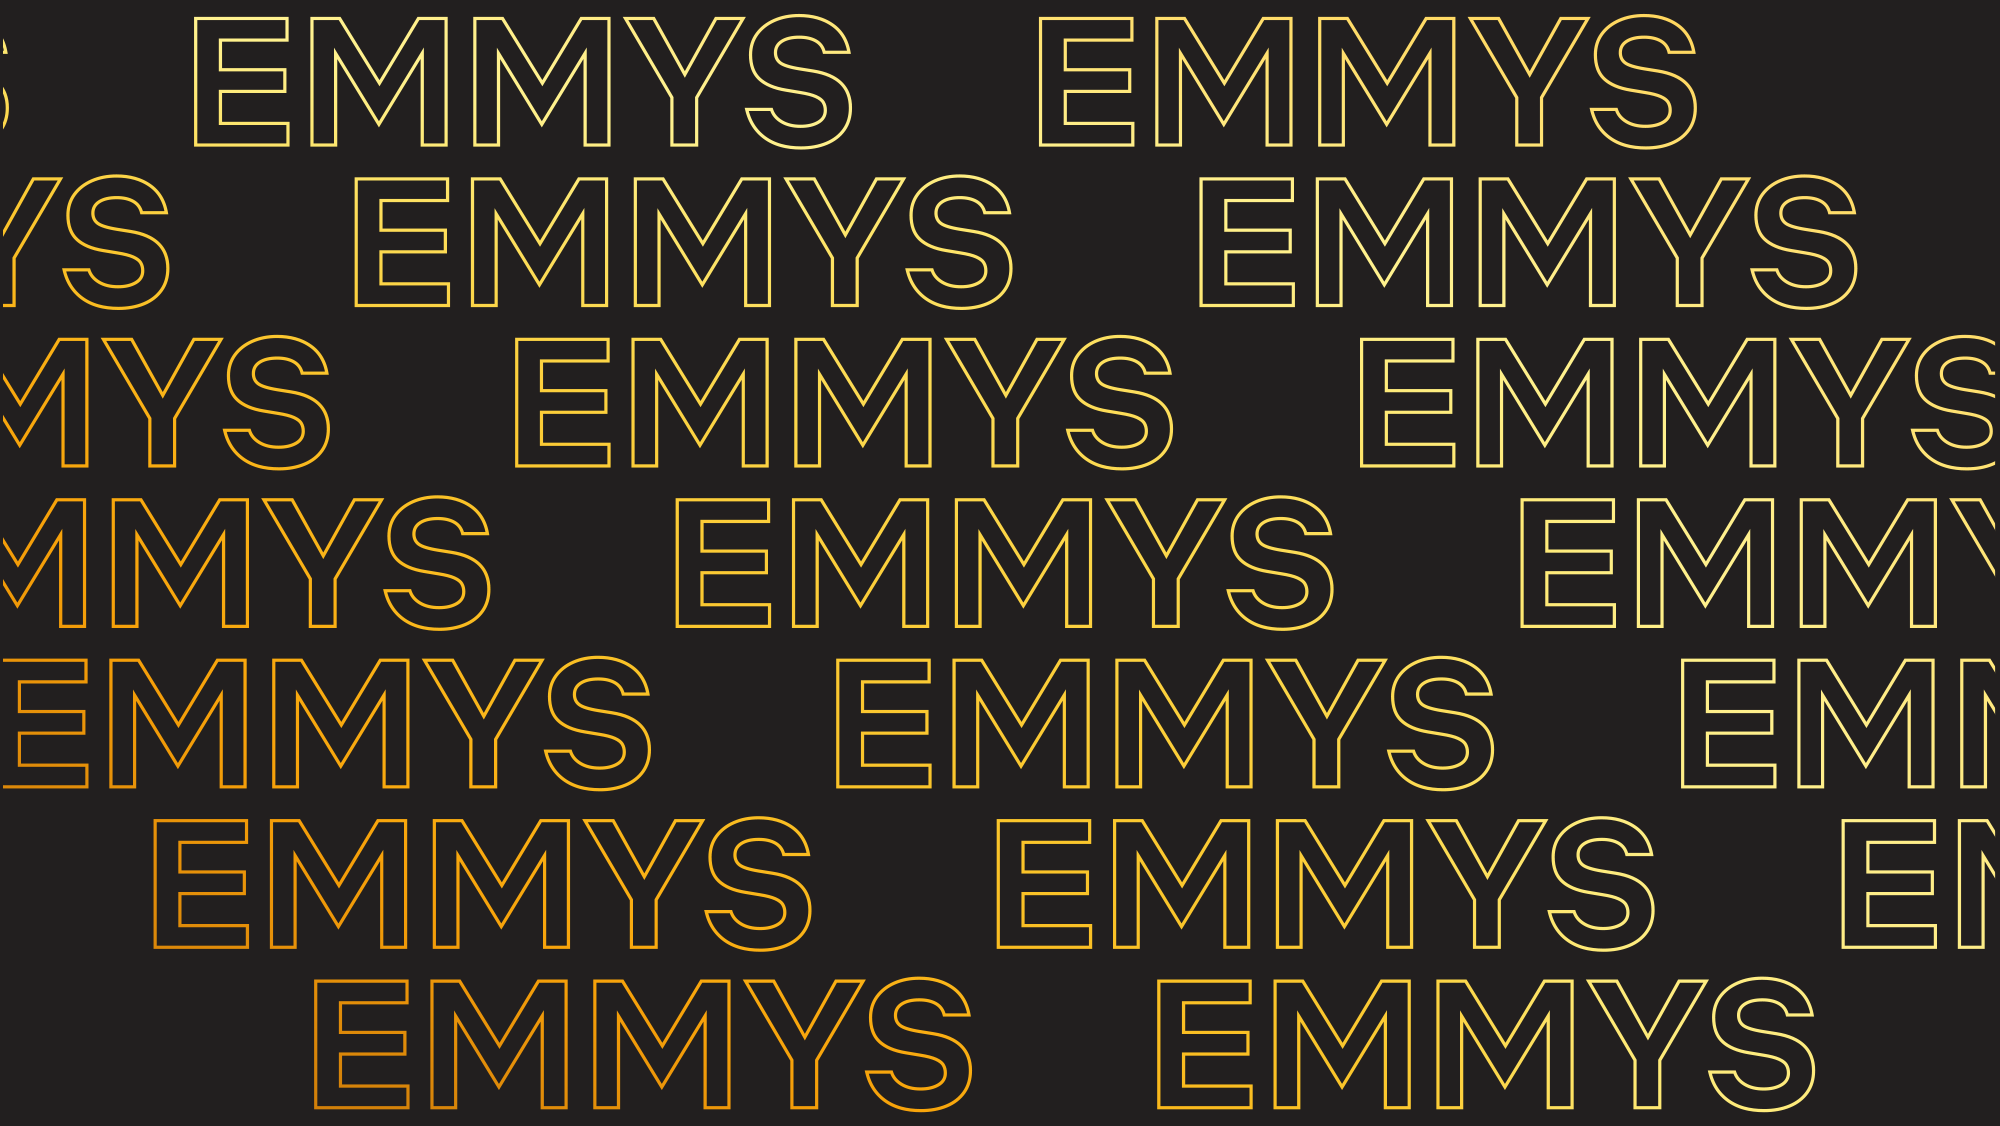 Emmy_4.png